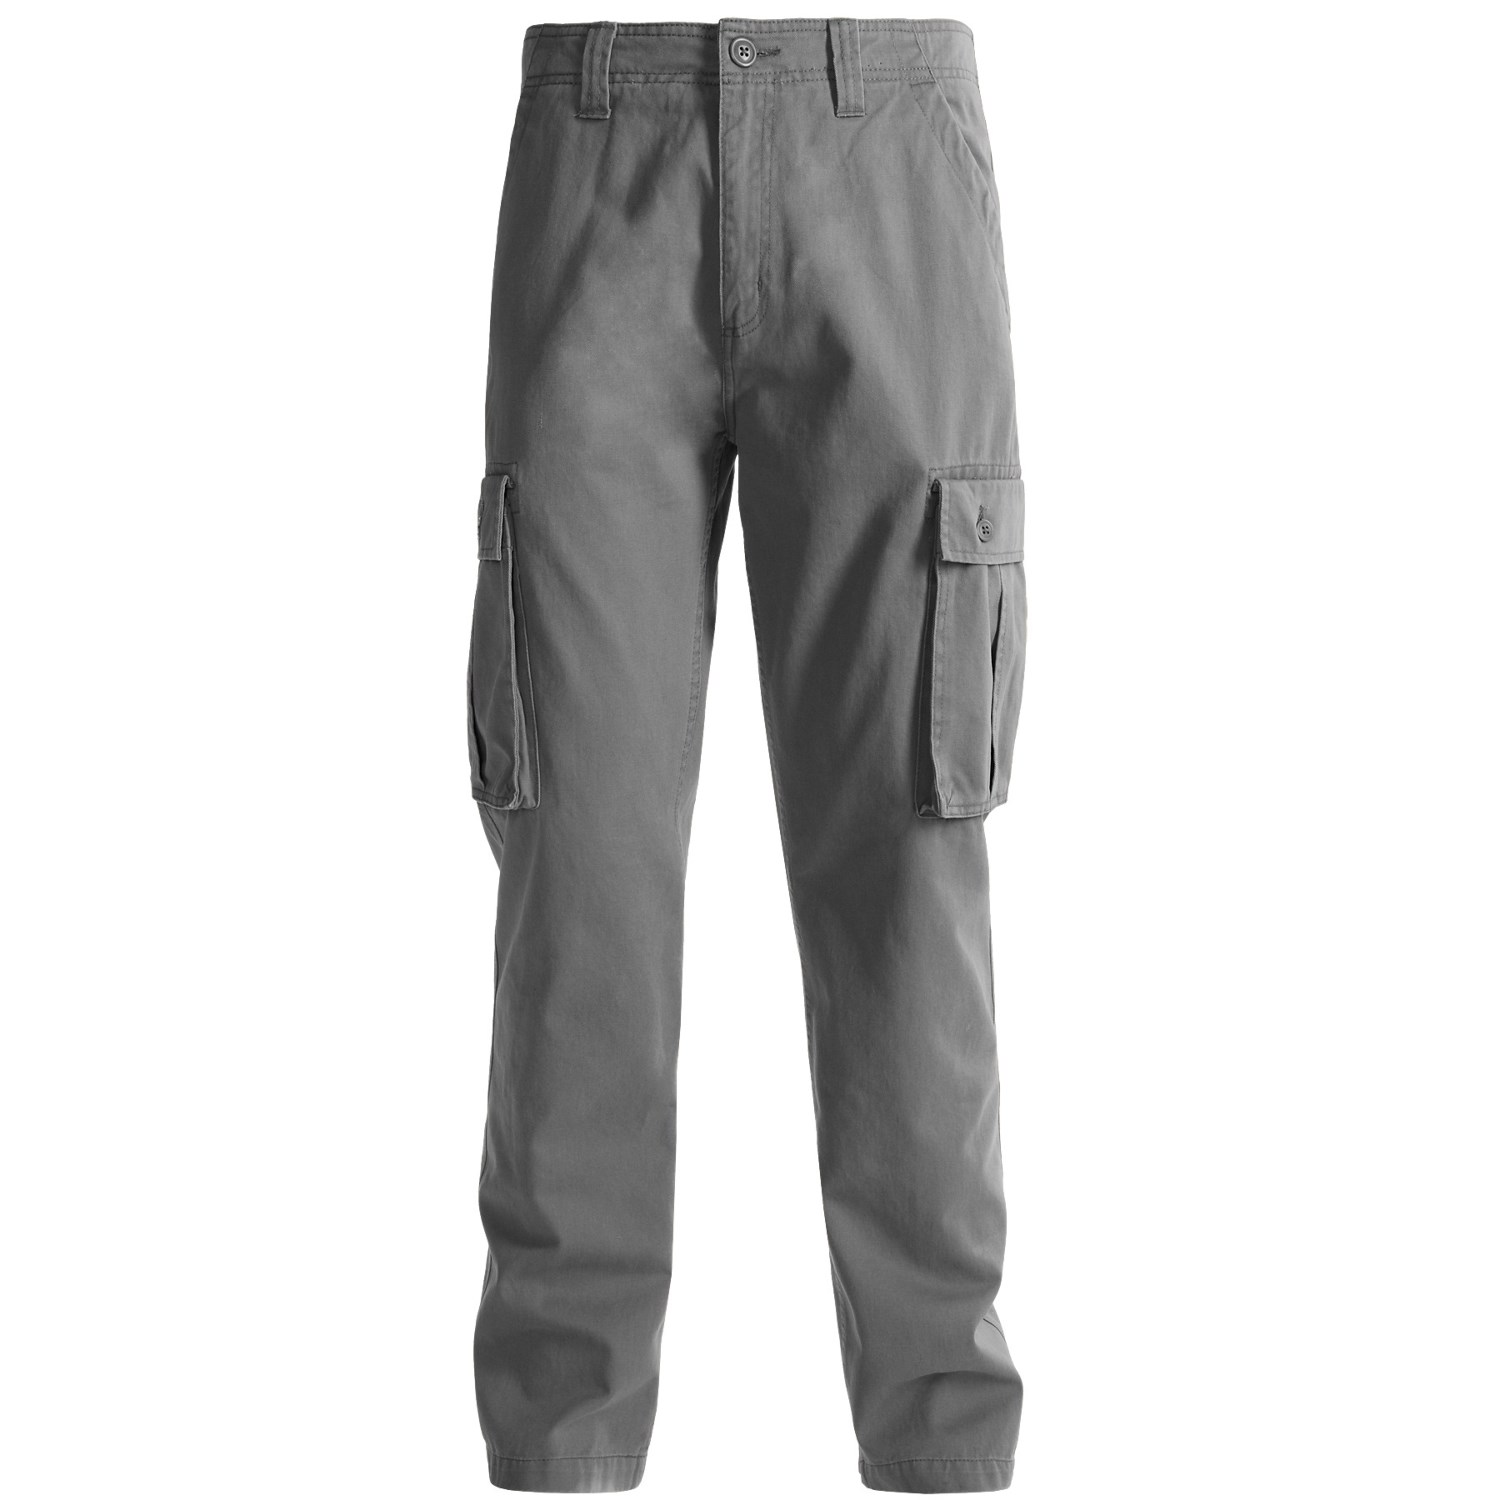 Men's Sweatpants & Joggers for Comfort and Warmth. When it comes to men's sweatpants, comfort is key. Whether you're going for a run or just lounging around the house, take on the day with a pair of comfortable sweats from DICK'S Sporting Goods.